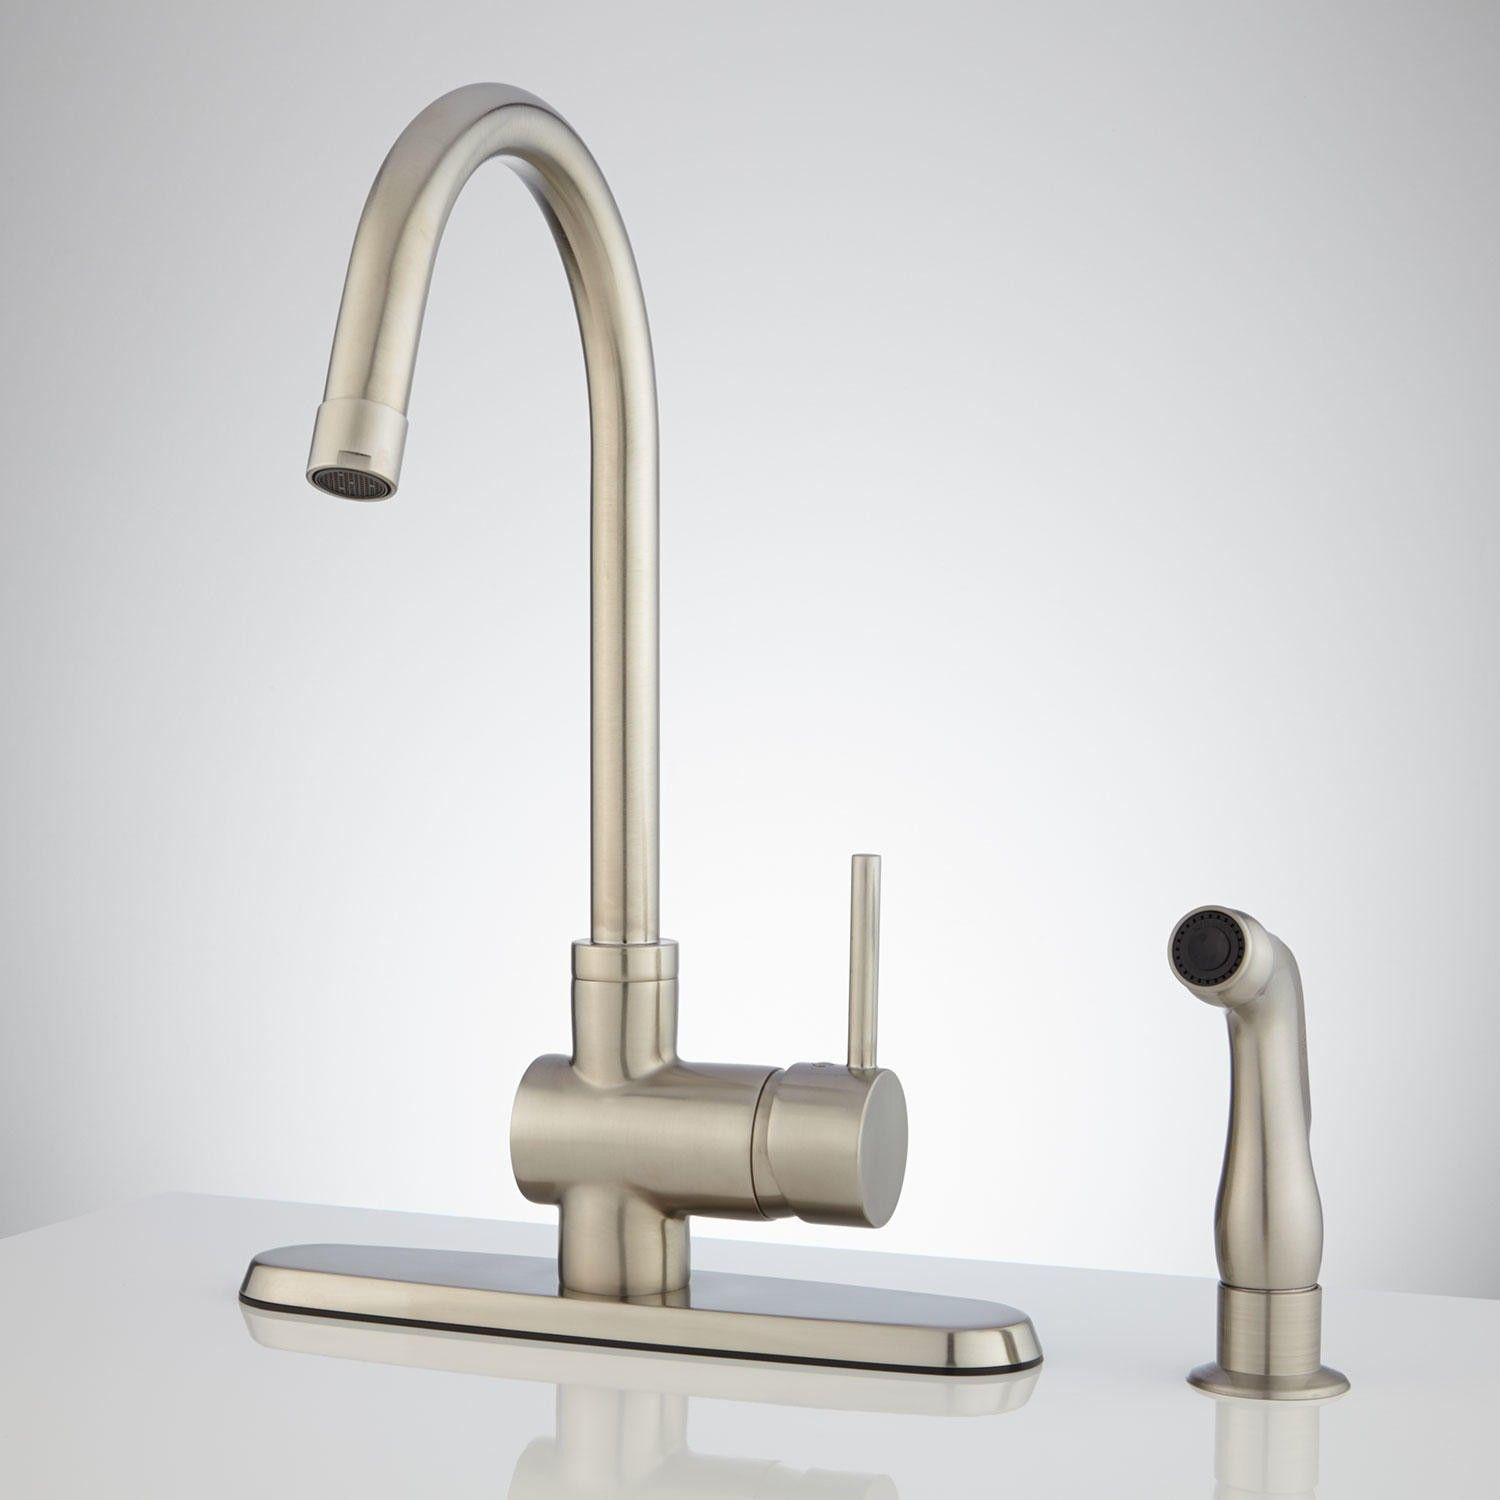 healey kitchen faucet with side spray faucets sprayer reviews | Home ...